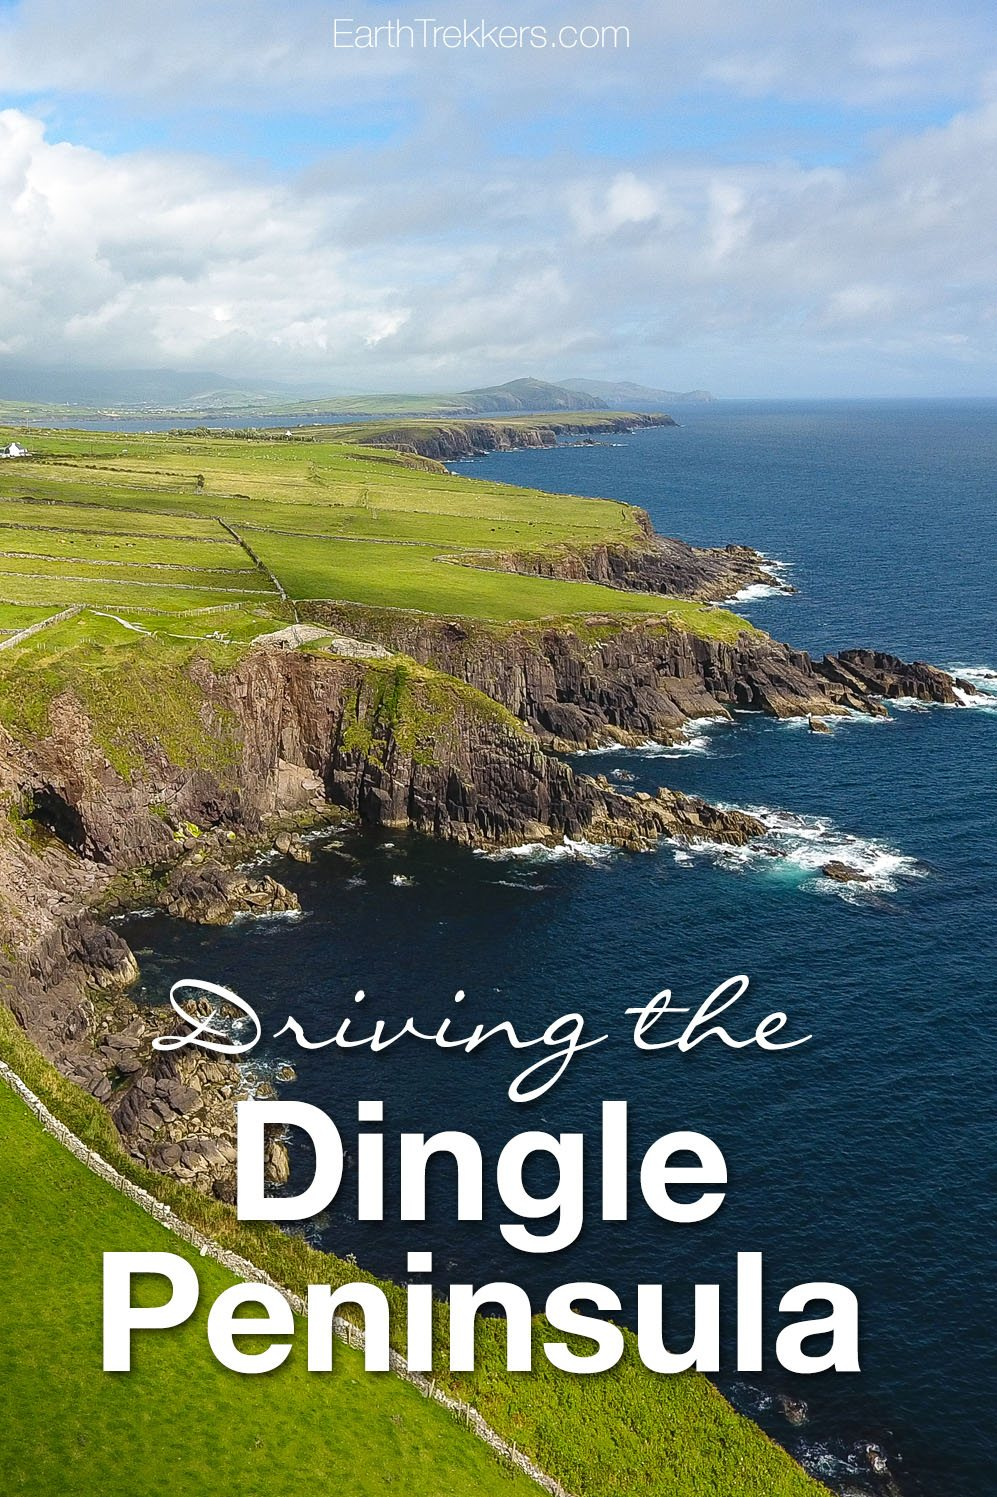 Slea Head Drive Dingle Peninsula Ireland